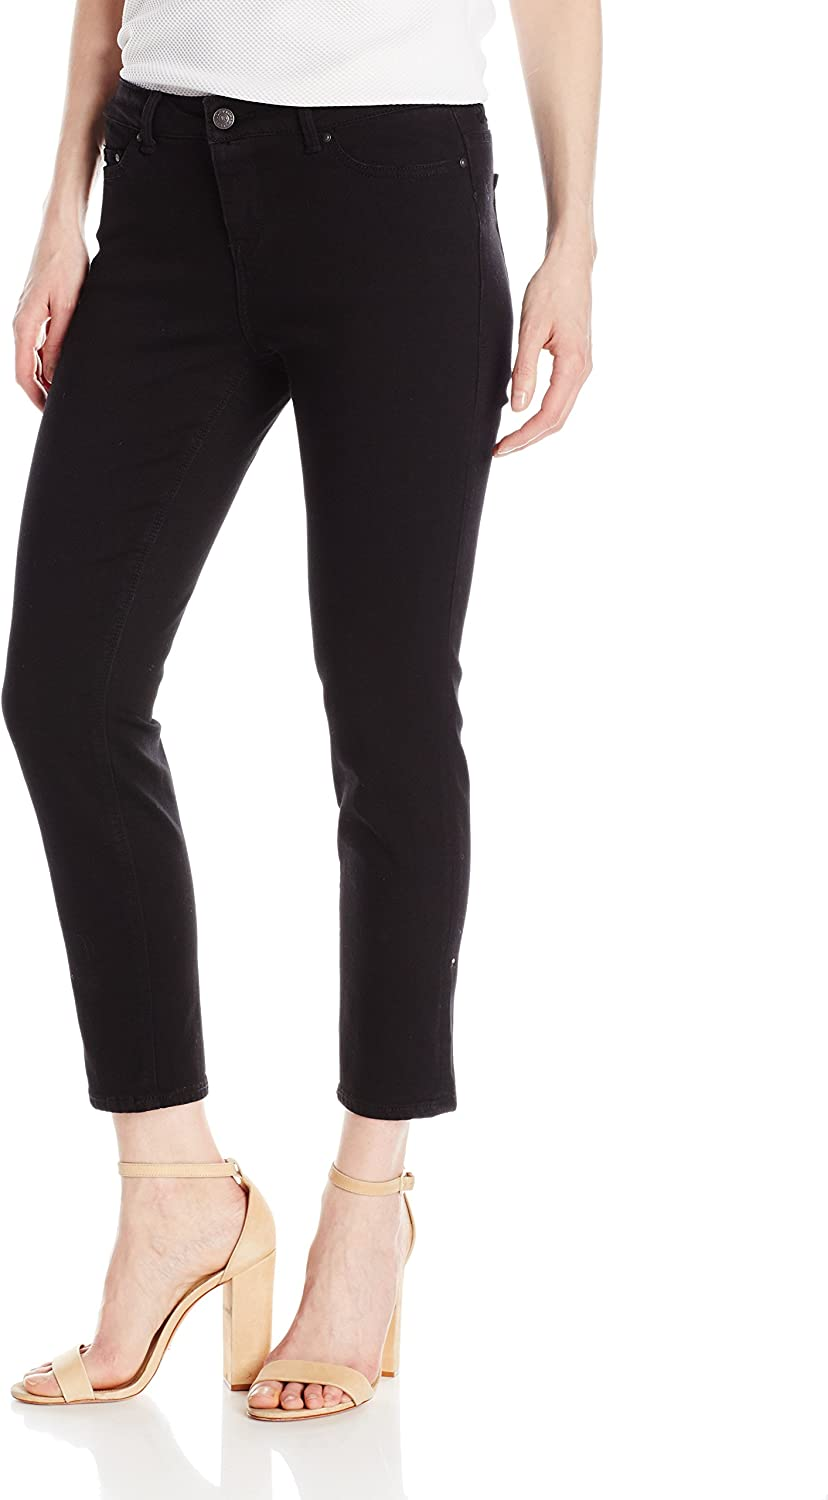 Jordache Legacy Womens Emily Midrise Skinny Ankle Jeans Black Jeans